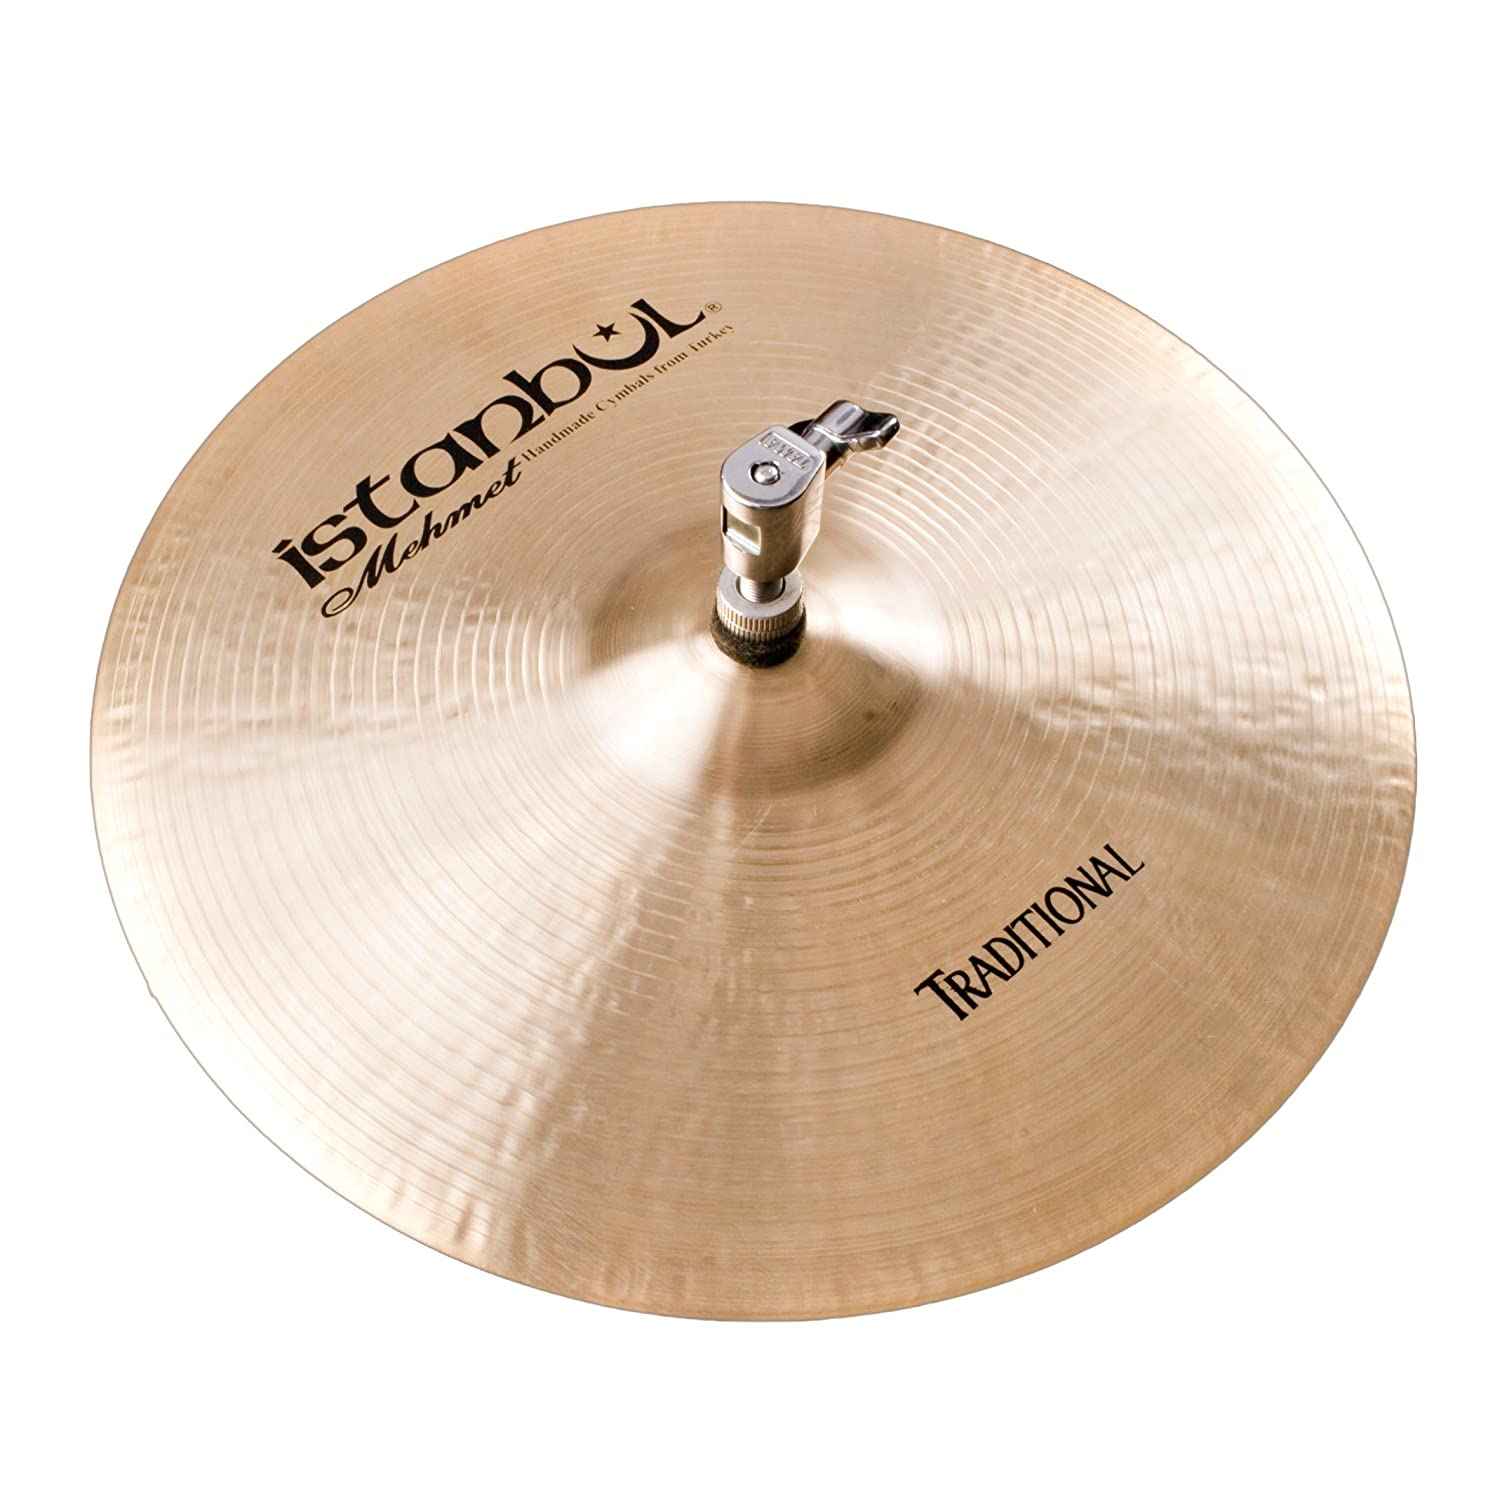 Istanbul Mehmet Cymbals Traditional Series Hi-Hat Heavy Cymbals TOP&BOTTOM HHH- (12